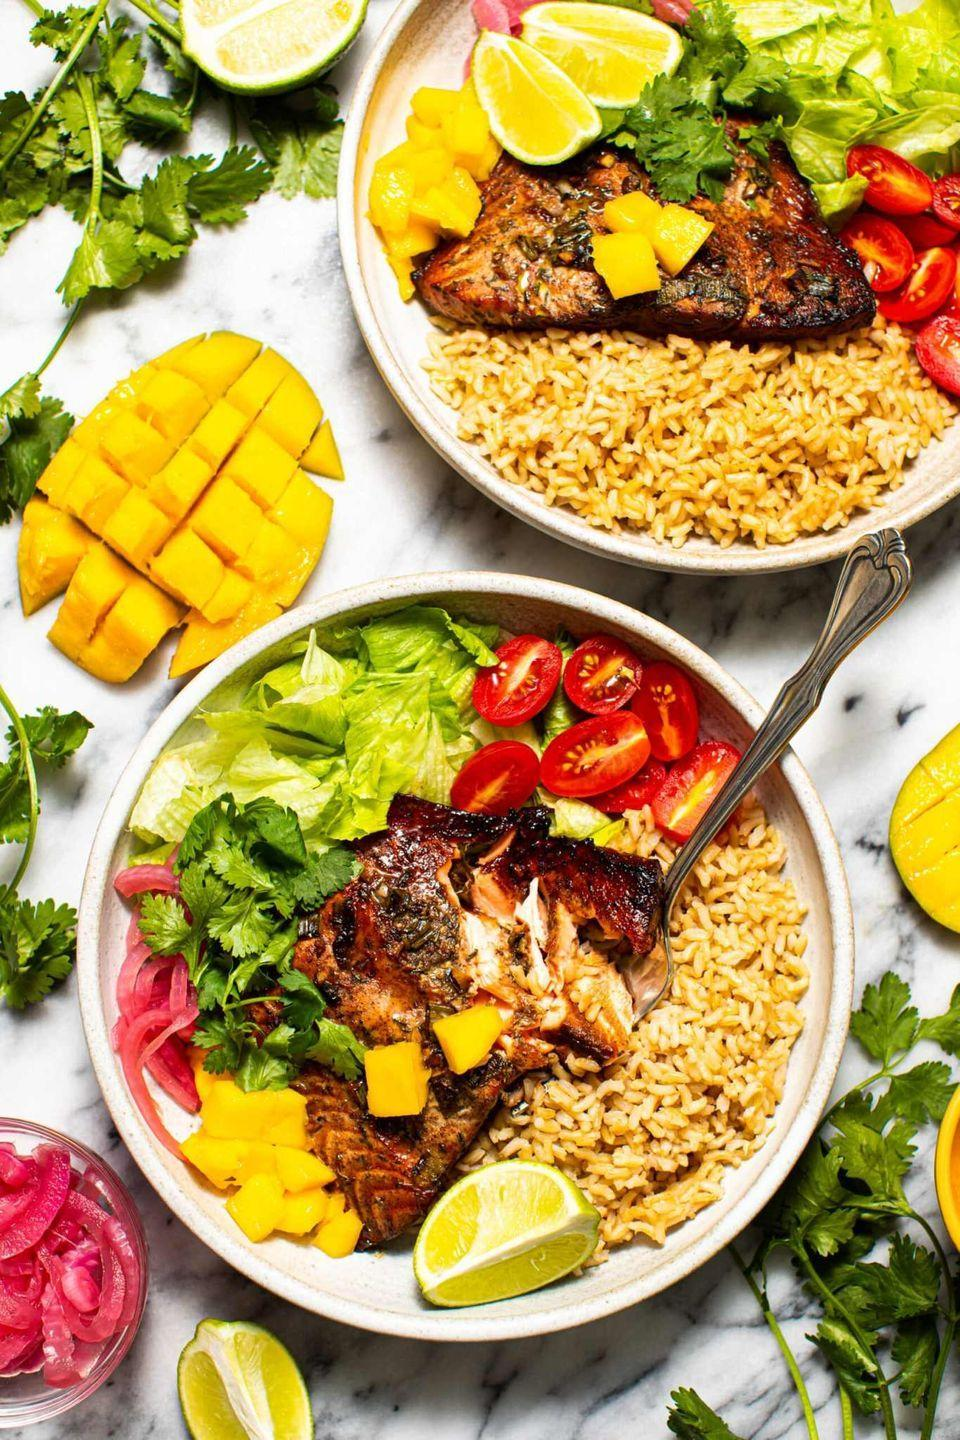 """<p>The homemade jerk marinade in this recipe takes baked salmon to a whole other level of flavor. Marinate the fish overnight for best results, and customize the bowls with your favorite toppings.</p><p><strong>Get the recipe at <a href=""""https://www.butterbeready.com/jerk-salmon-bowls/"""" rel=""""nofollow noopener"""" target=""""_blank"""" data-ylk=""""slk:Butter Be Ready"""" class=""""link rapid-noclick-resp"""">Butter Be Ready</a>.</strong> </p>"""